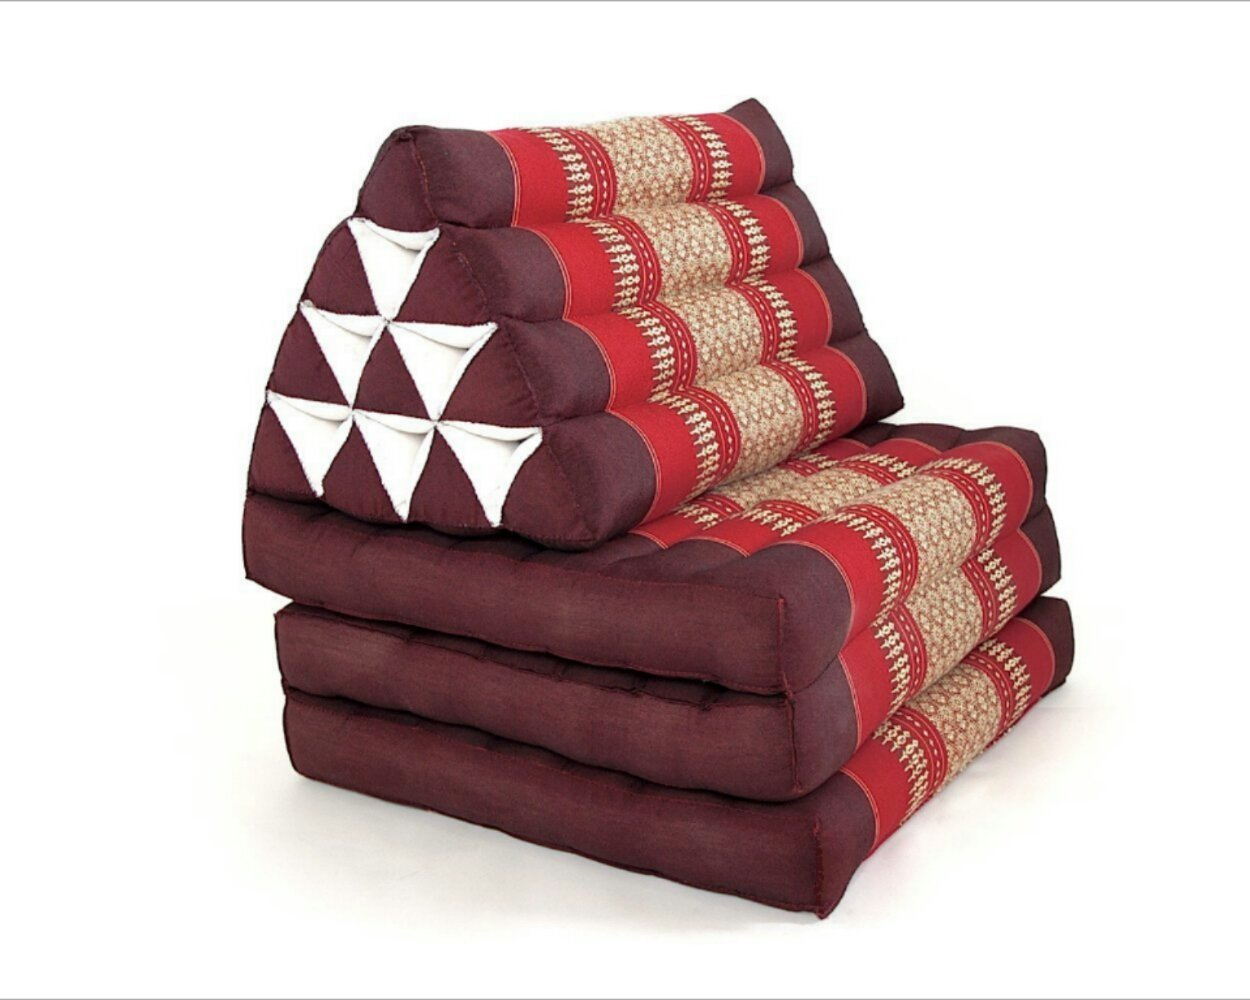 Thai Handmade Foldout Triangle Thai Cushion, 67x21x3 inches, Kapok Fabric,Red, Premium Double Stitched by WADSUWAN SHOP